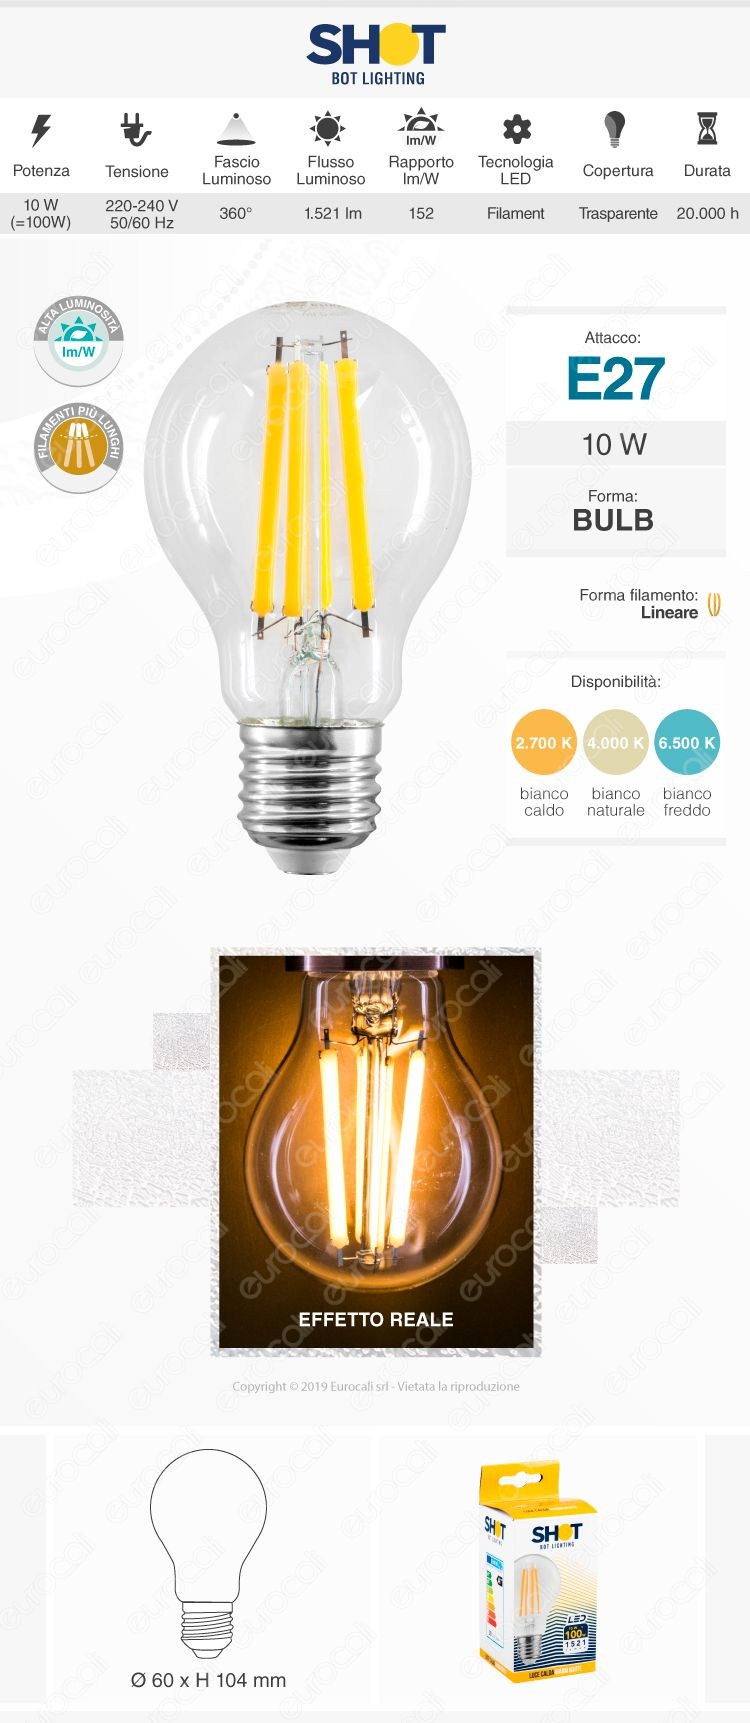 Bot Lighting Shot Lampadina LED E27 10W Bulb A60 Filamento Extra-Lungo